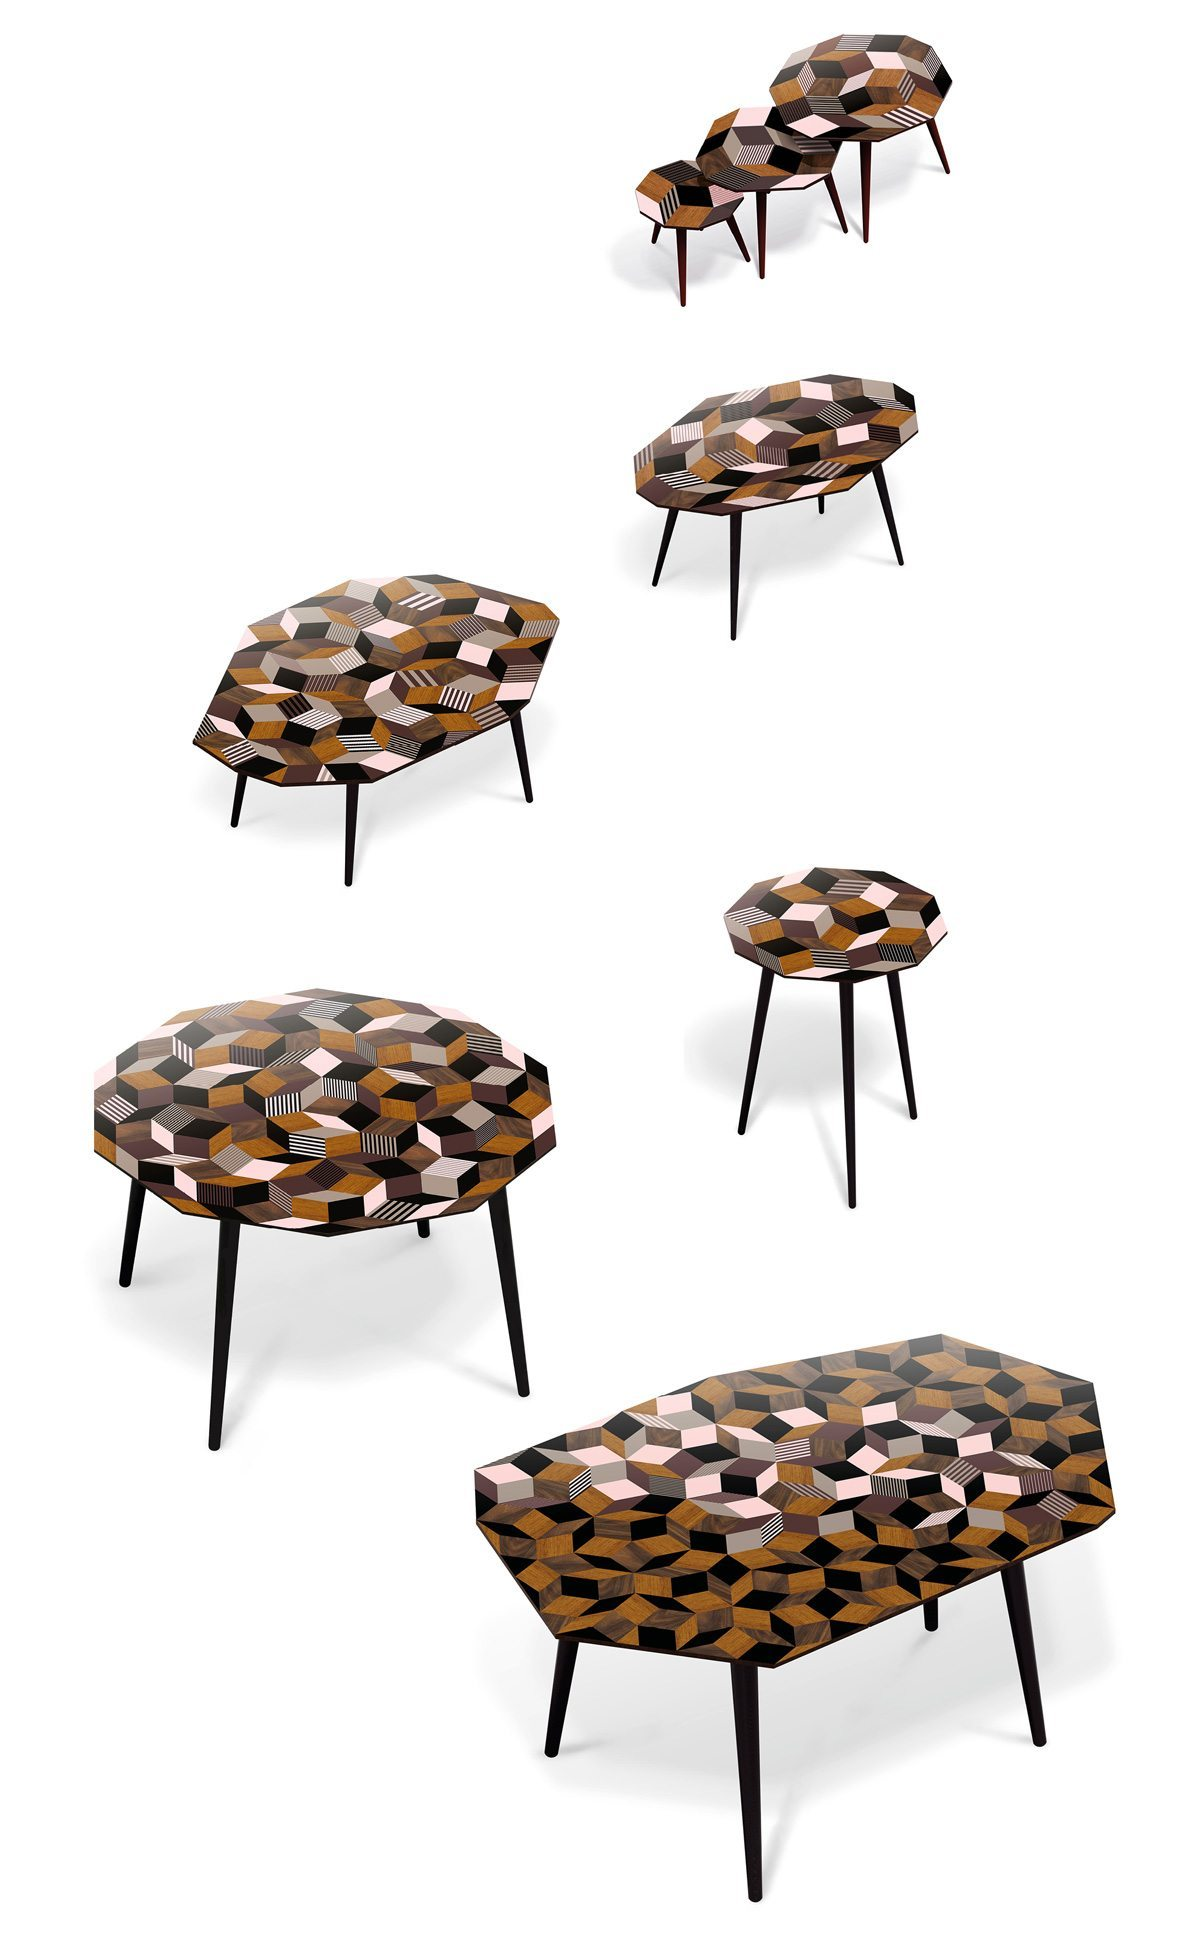 made in design plateaux des tables fancy wood par ichetkar pavage penrose marqueterie et rose